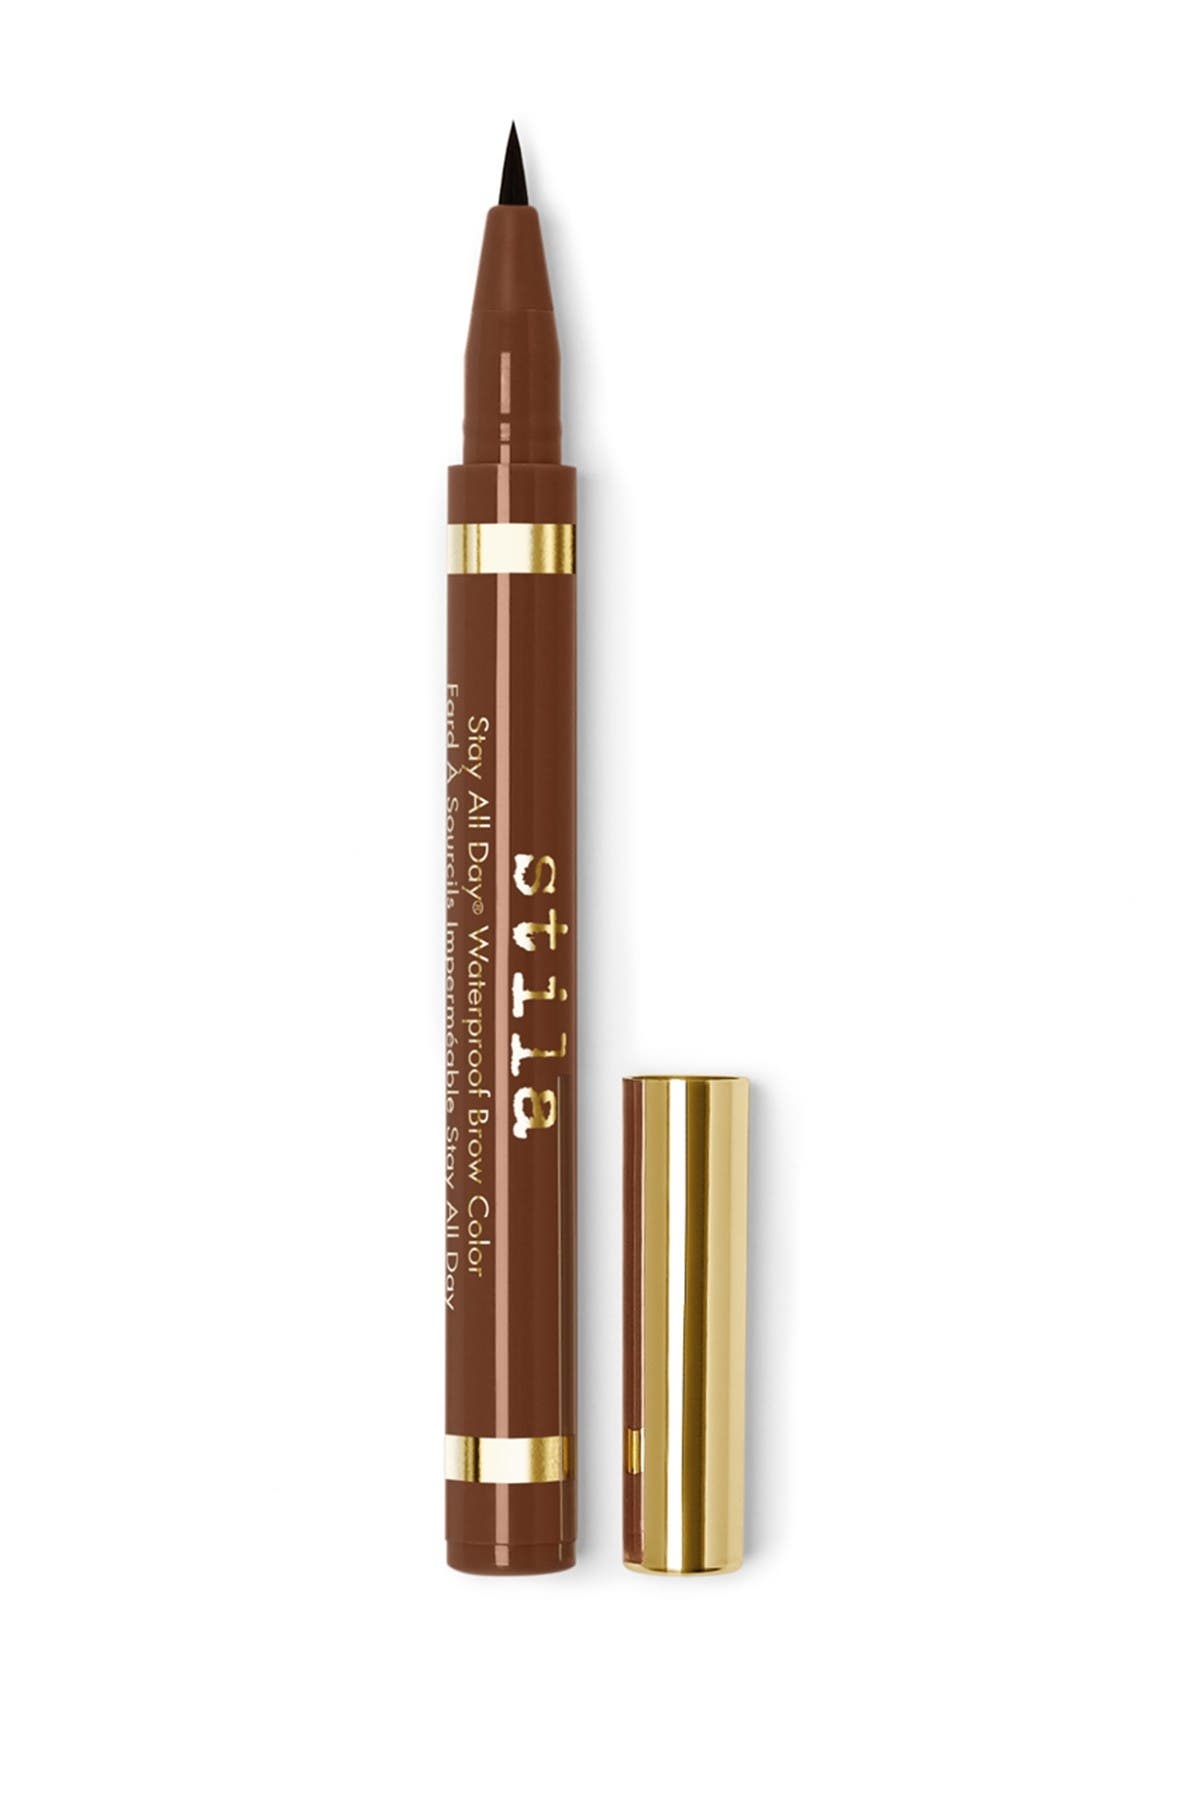 Image of Stila Stay All Day Waterproof Brow Color - Auburn